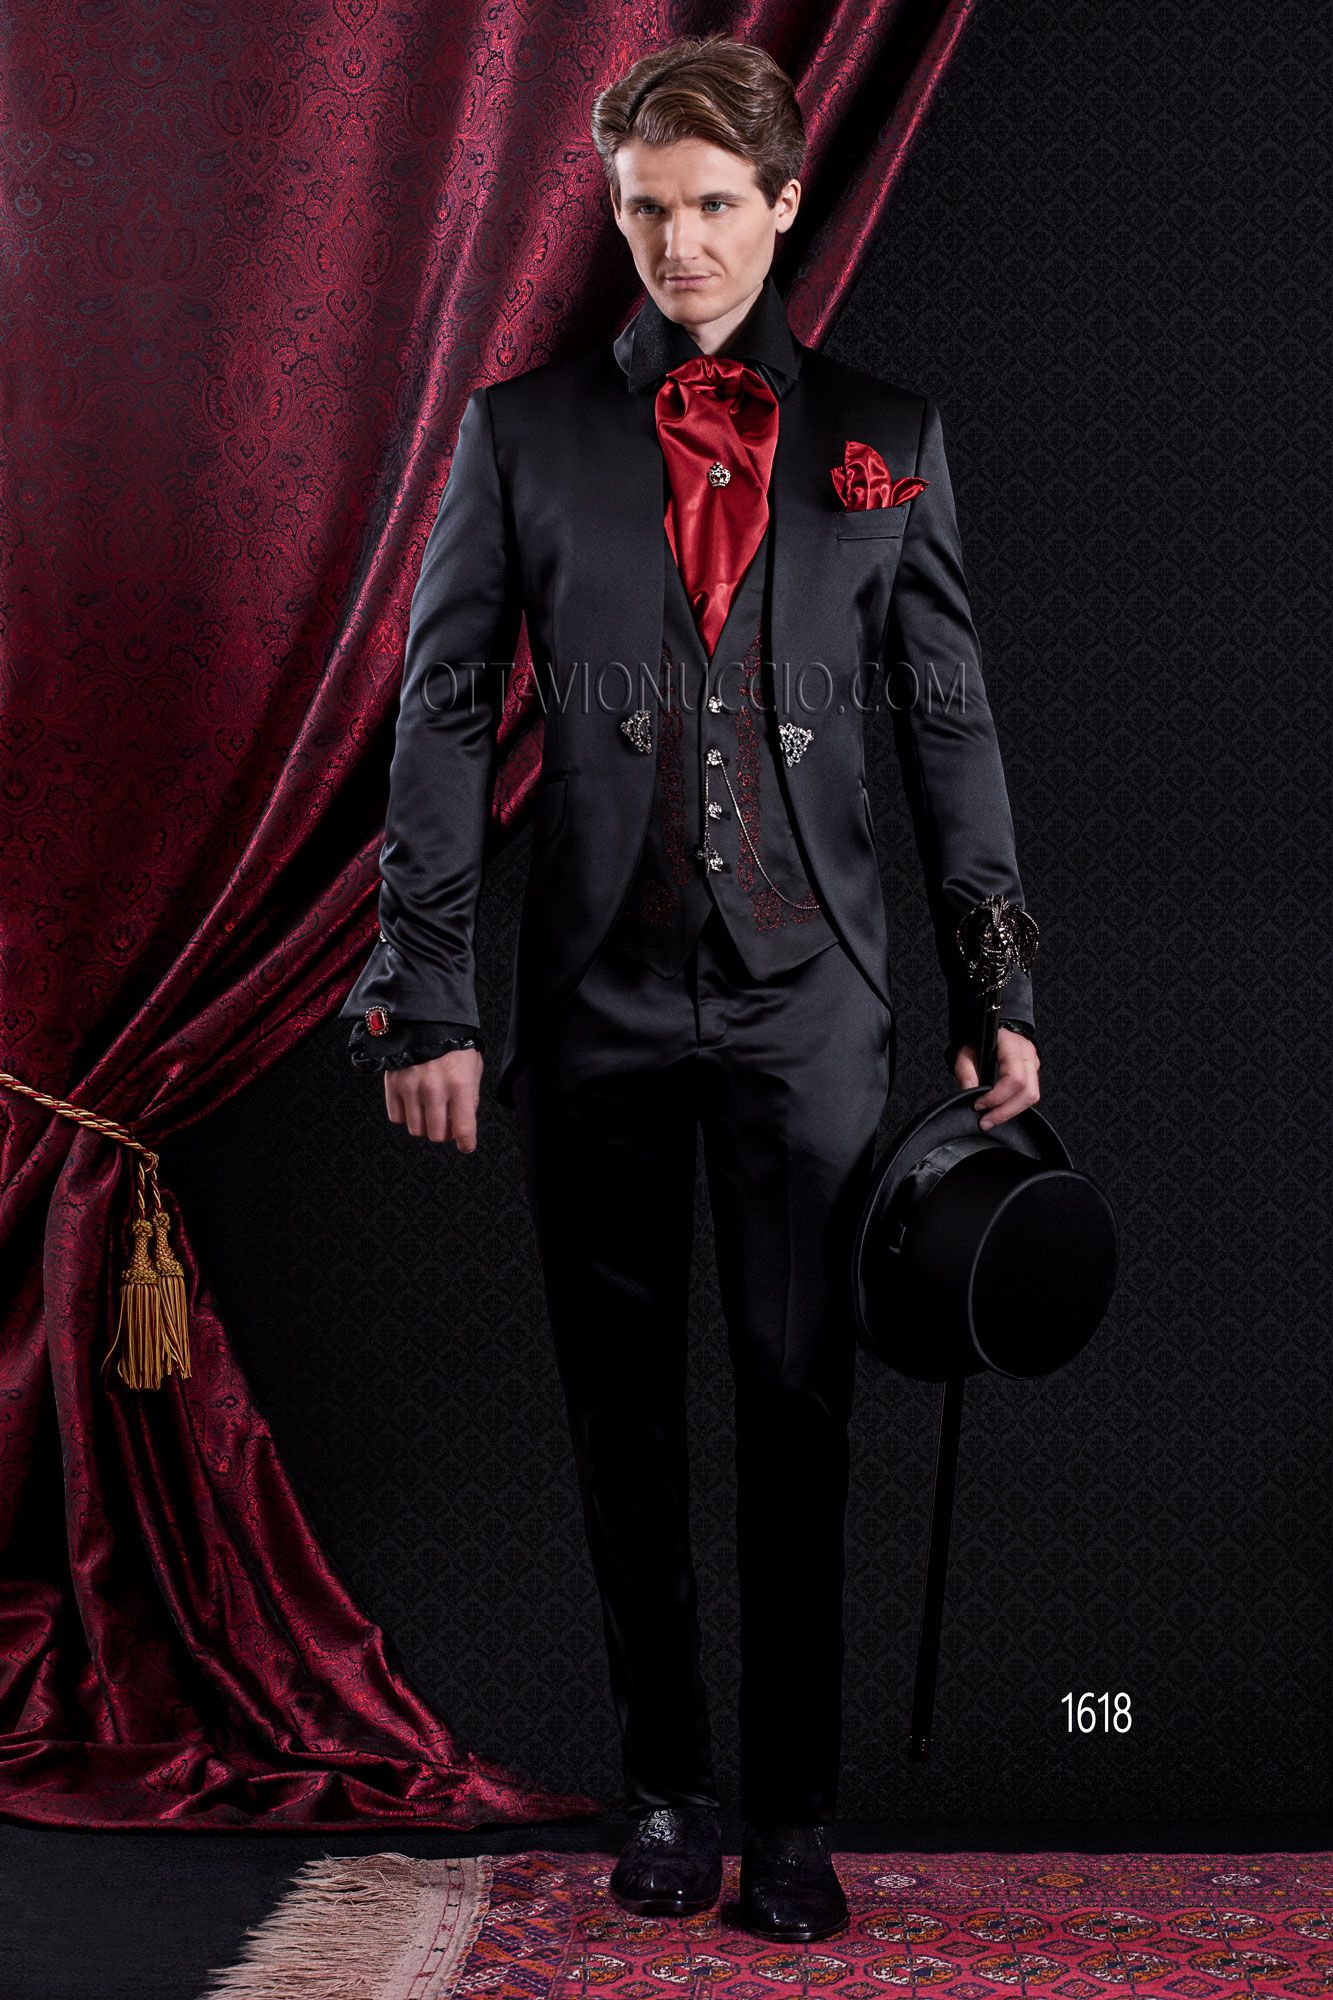 Black #satin #Gothic #baroque #wedding #suit for #groom with #red ...